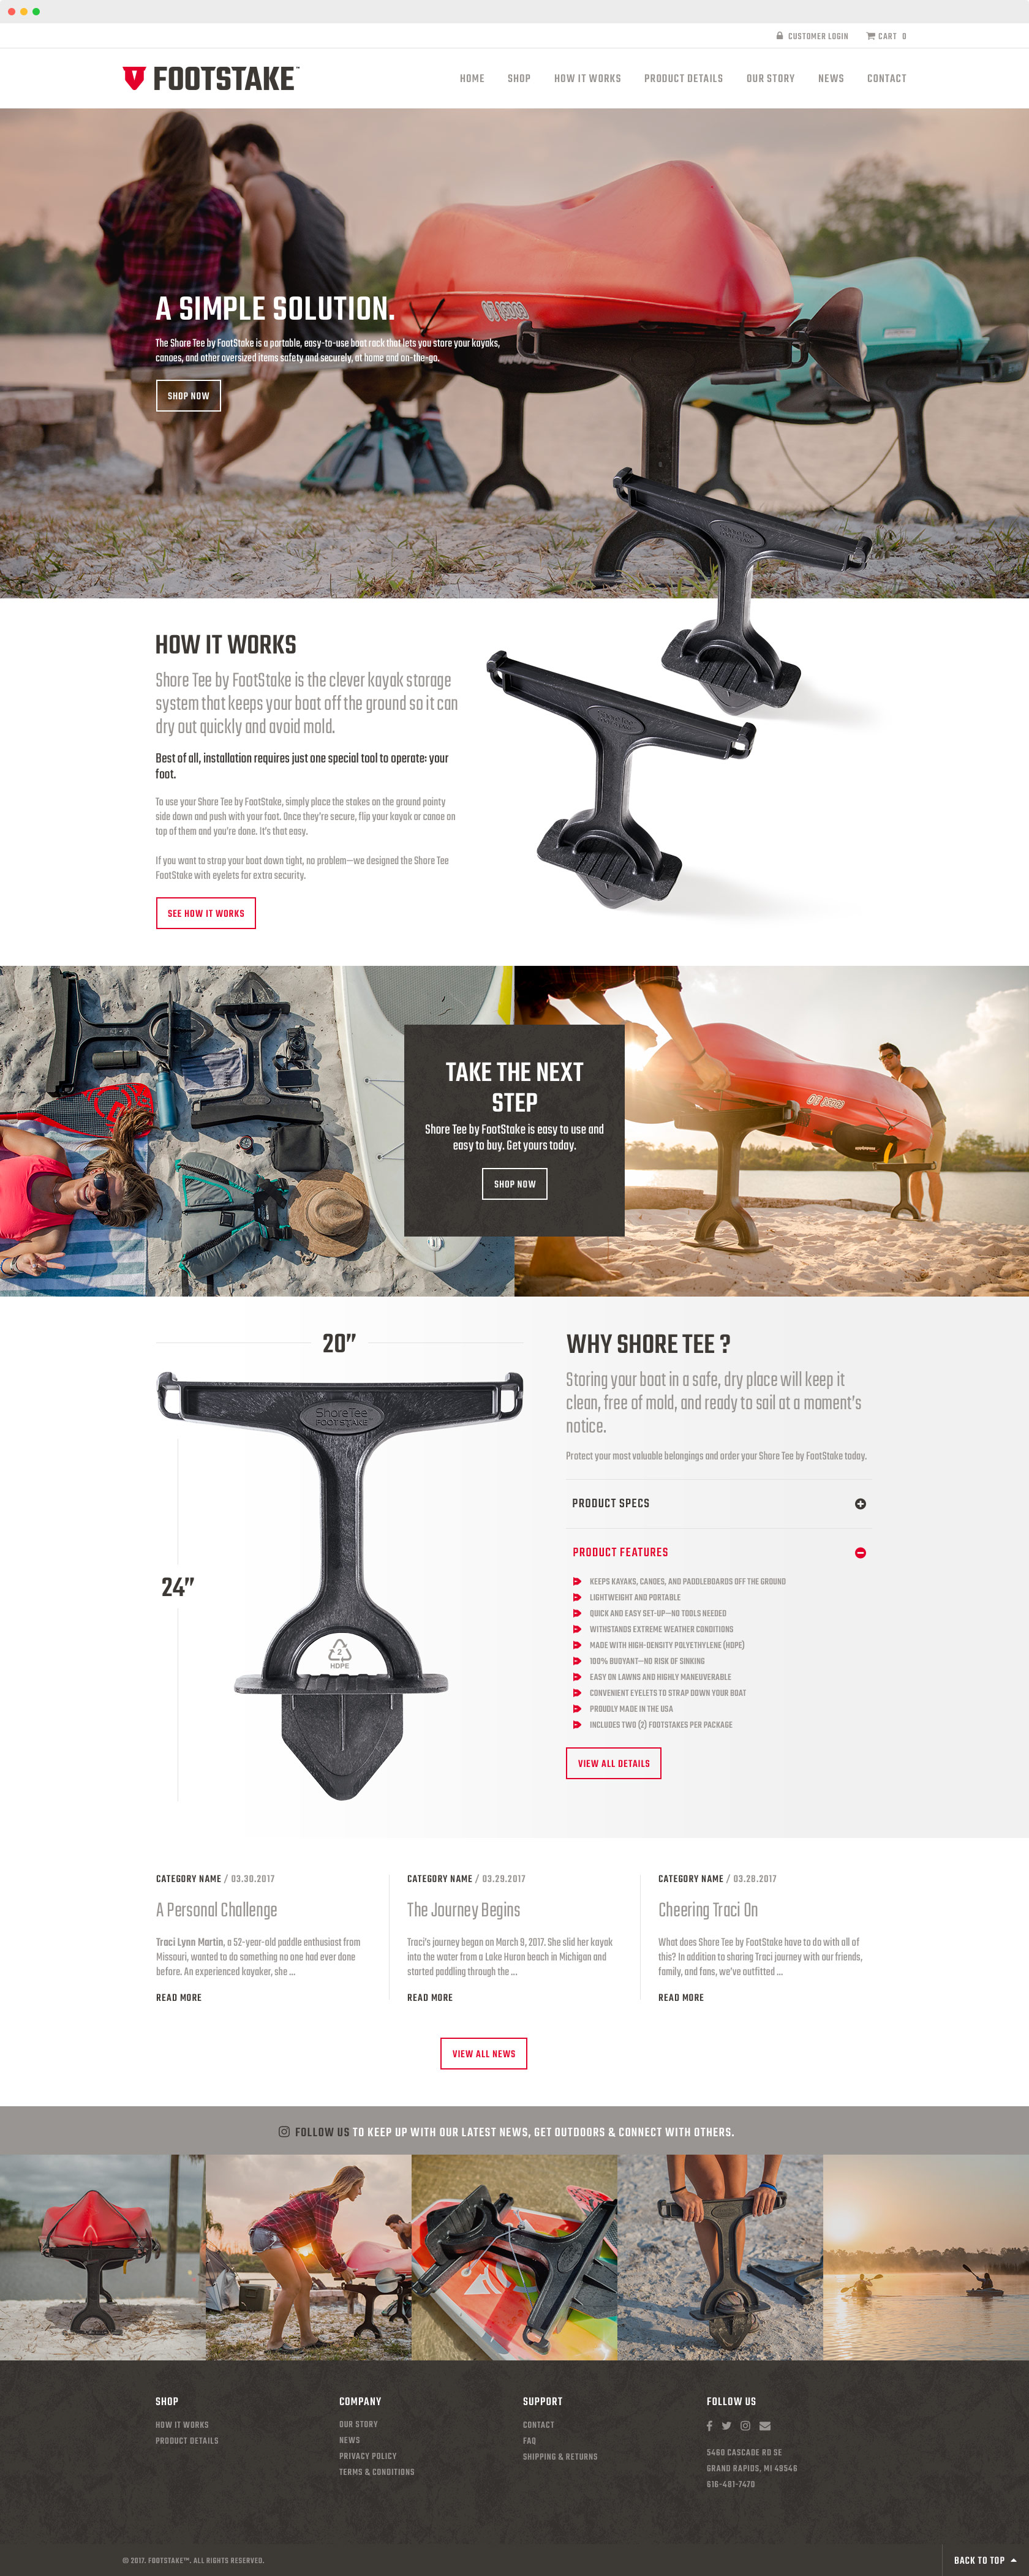 FootStake™ Website Design